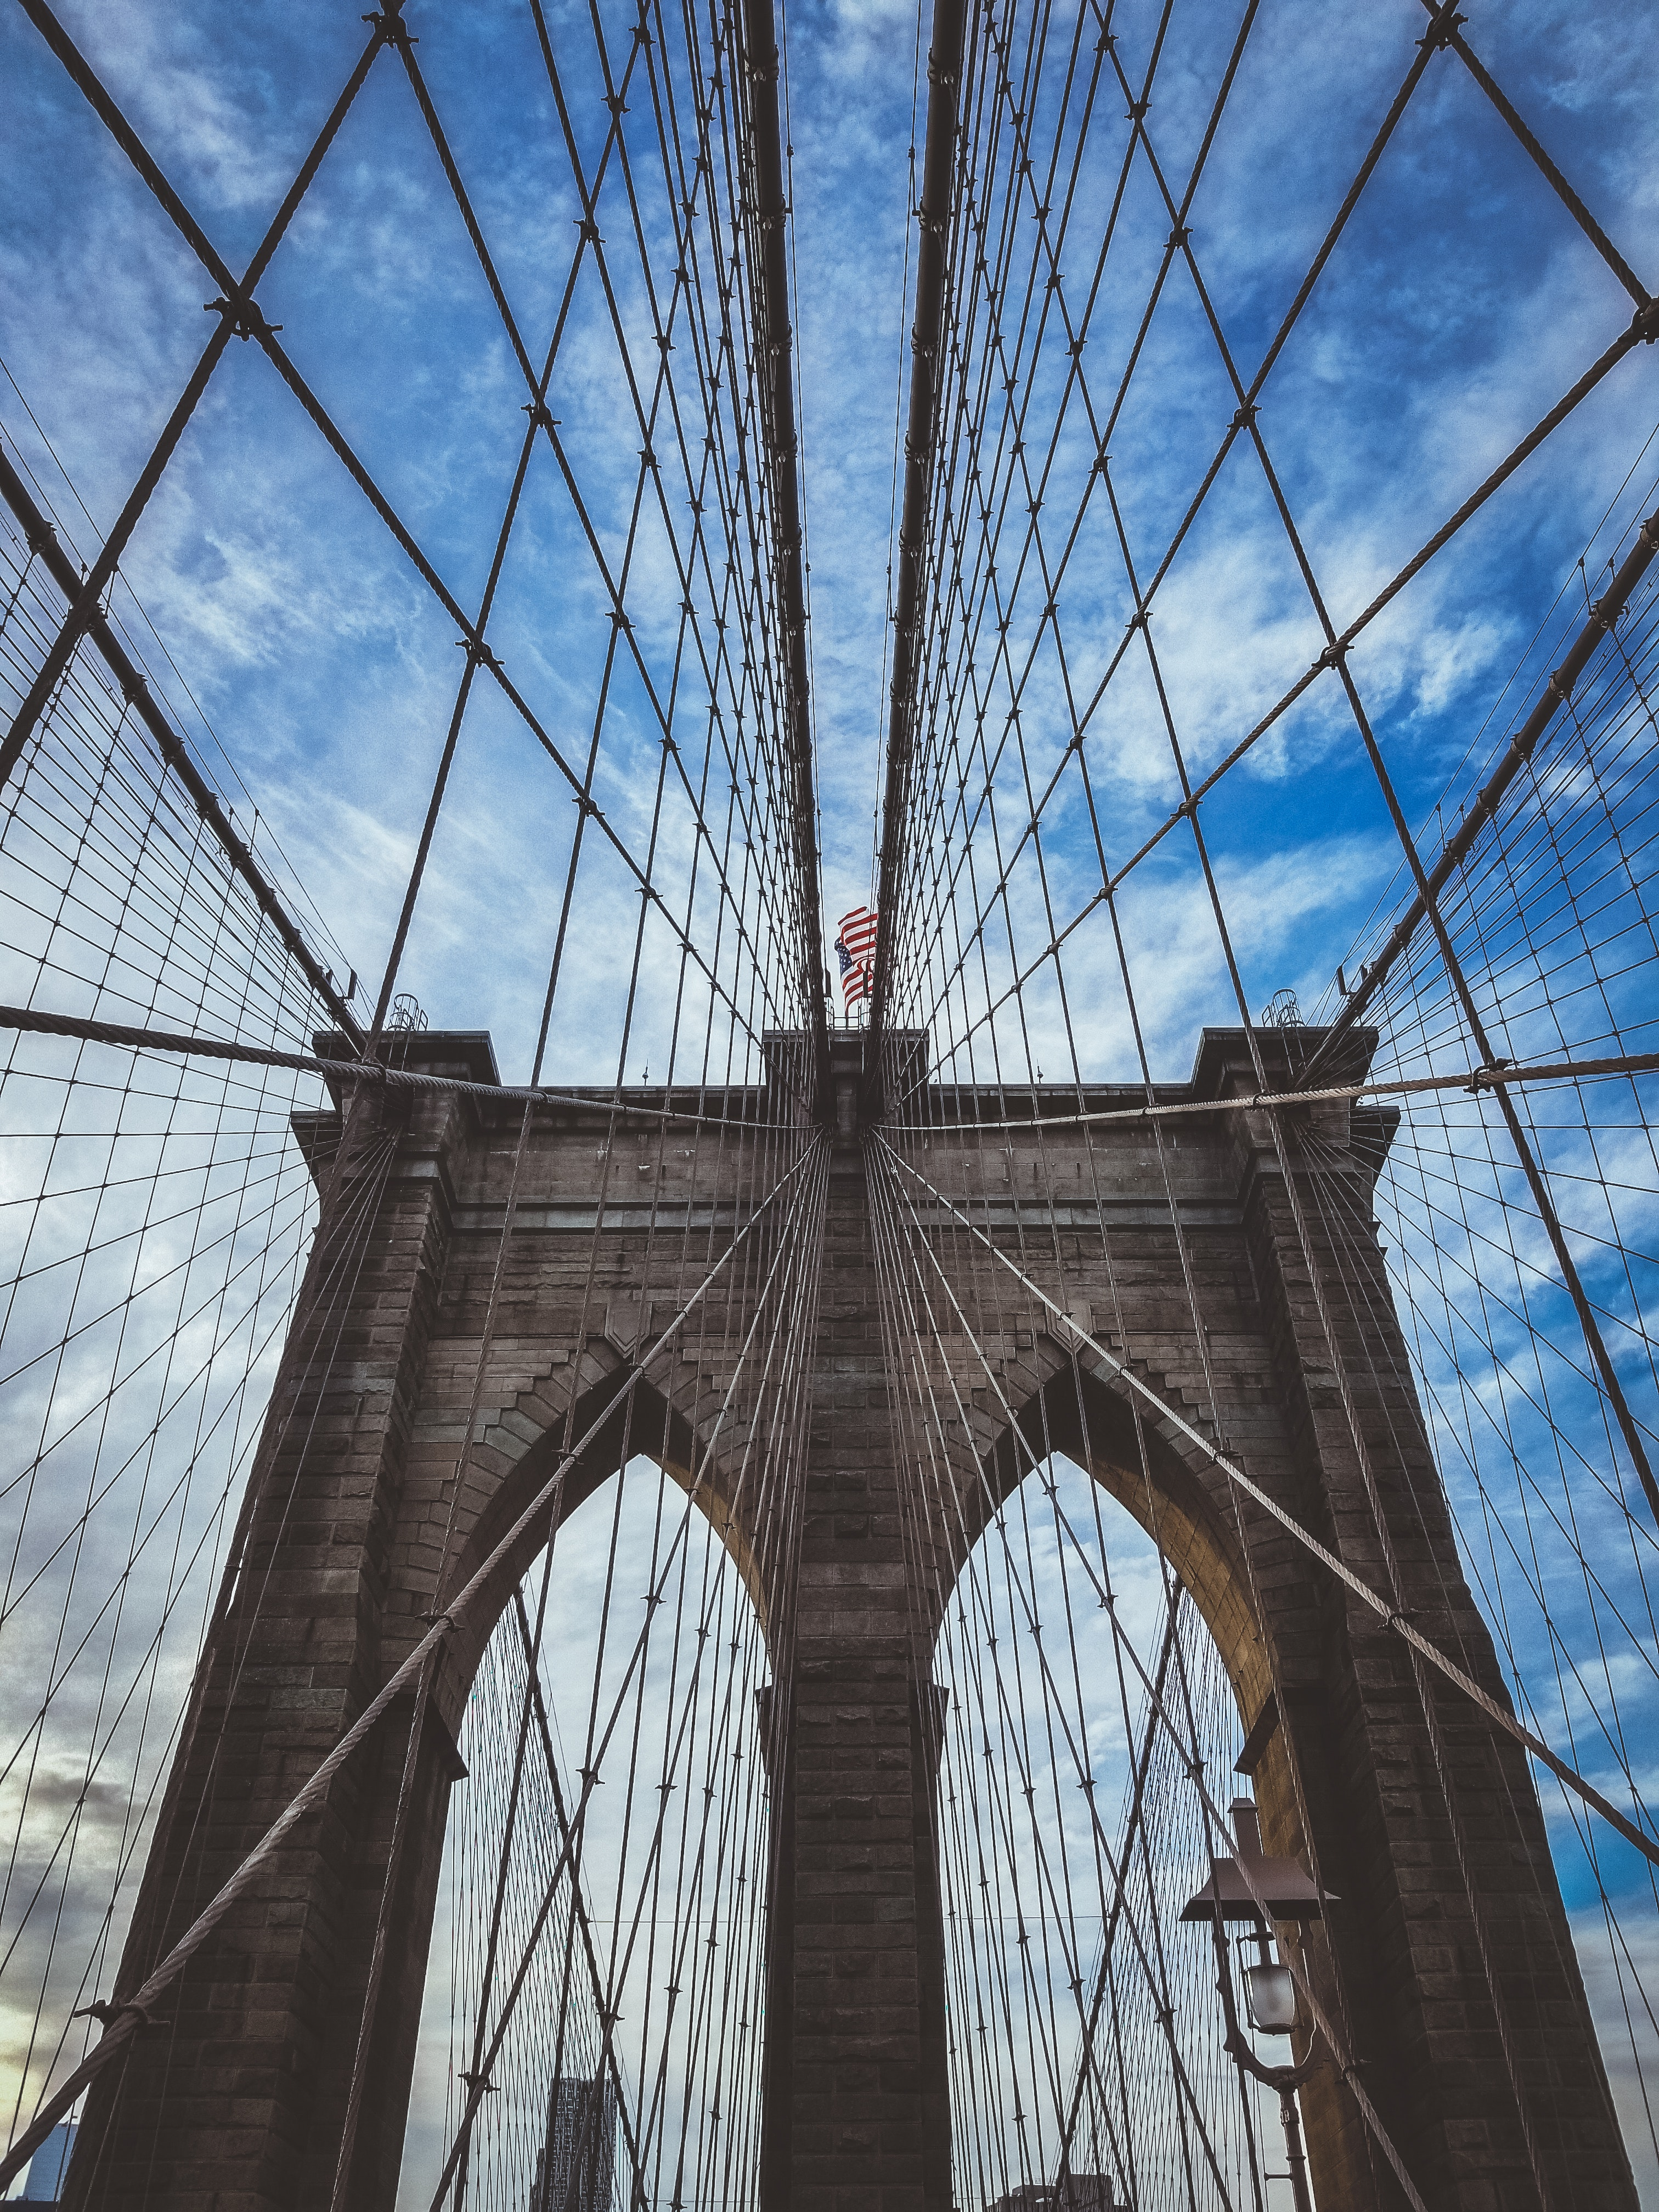 Low angle view photo of brooklyn bridge free stock photo free download malvernweather Images